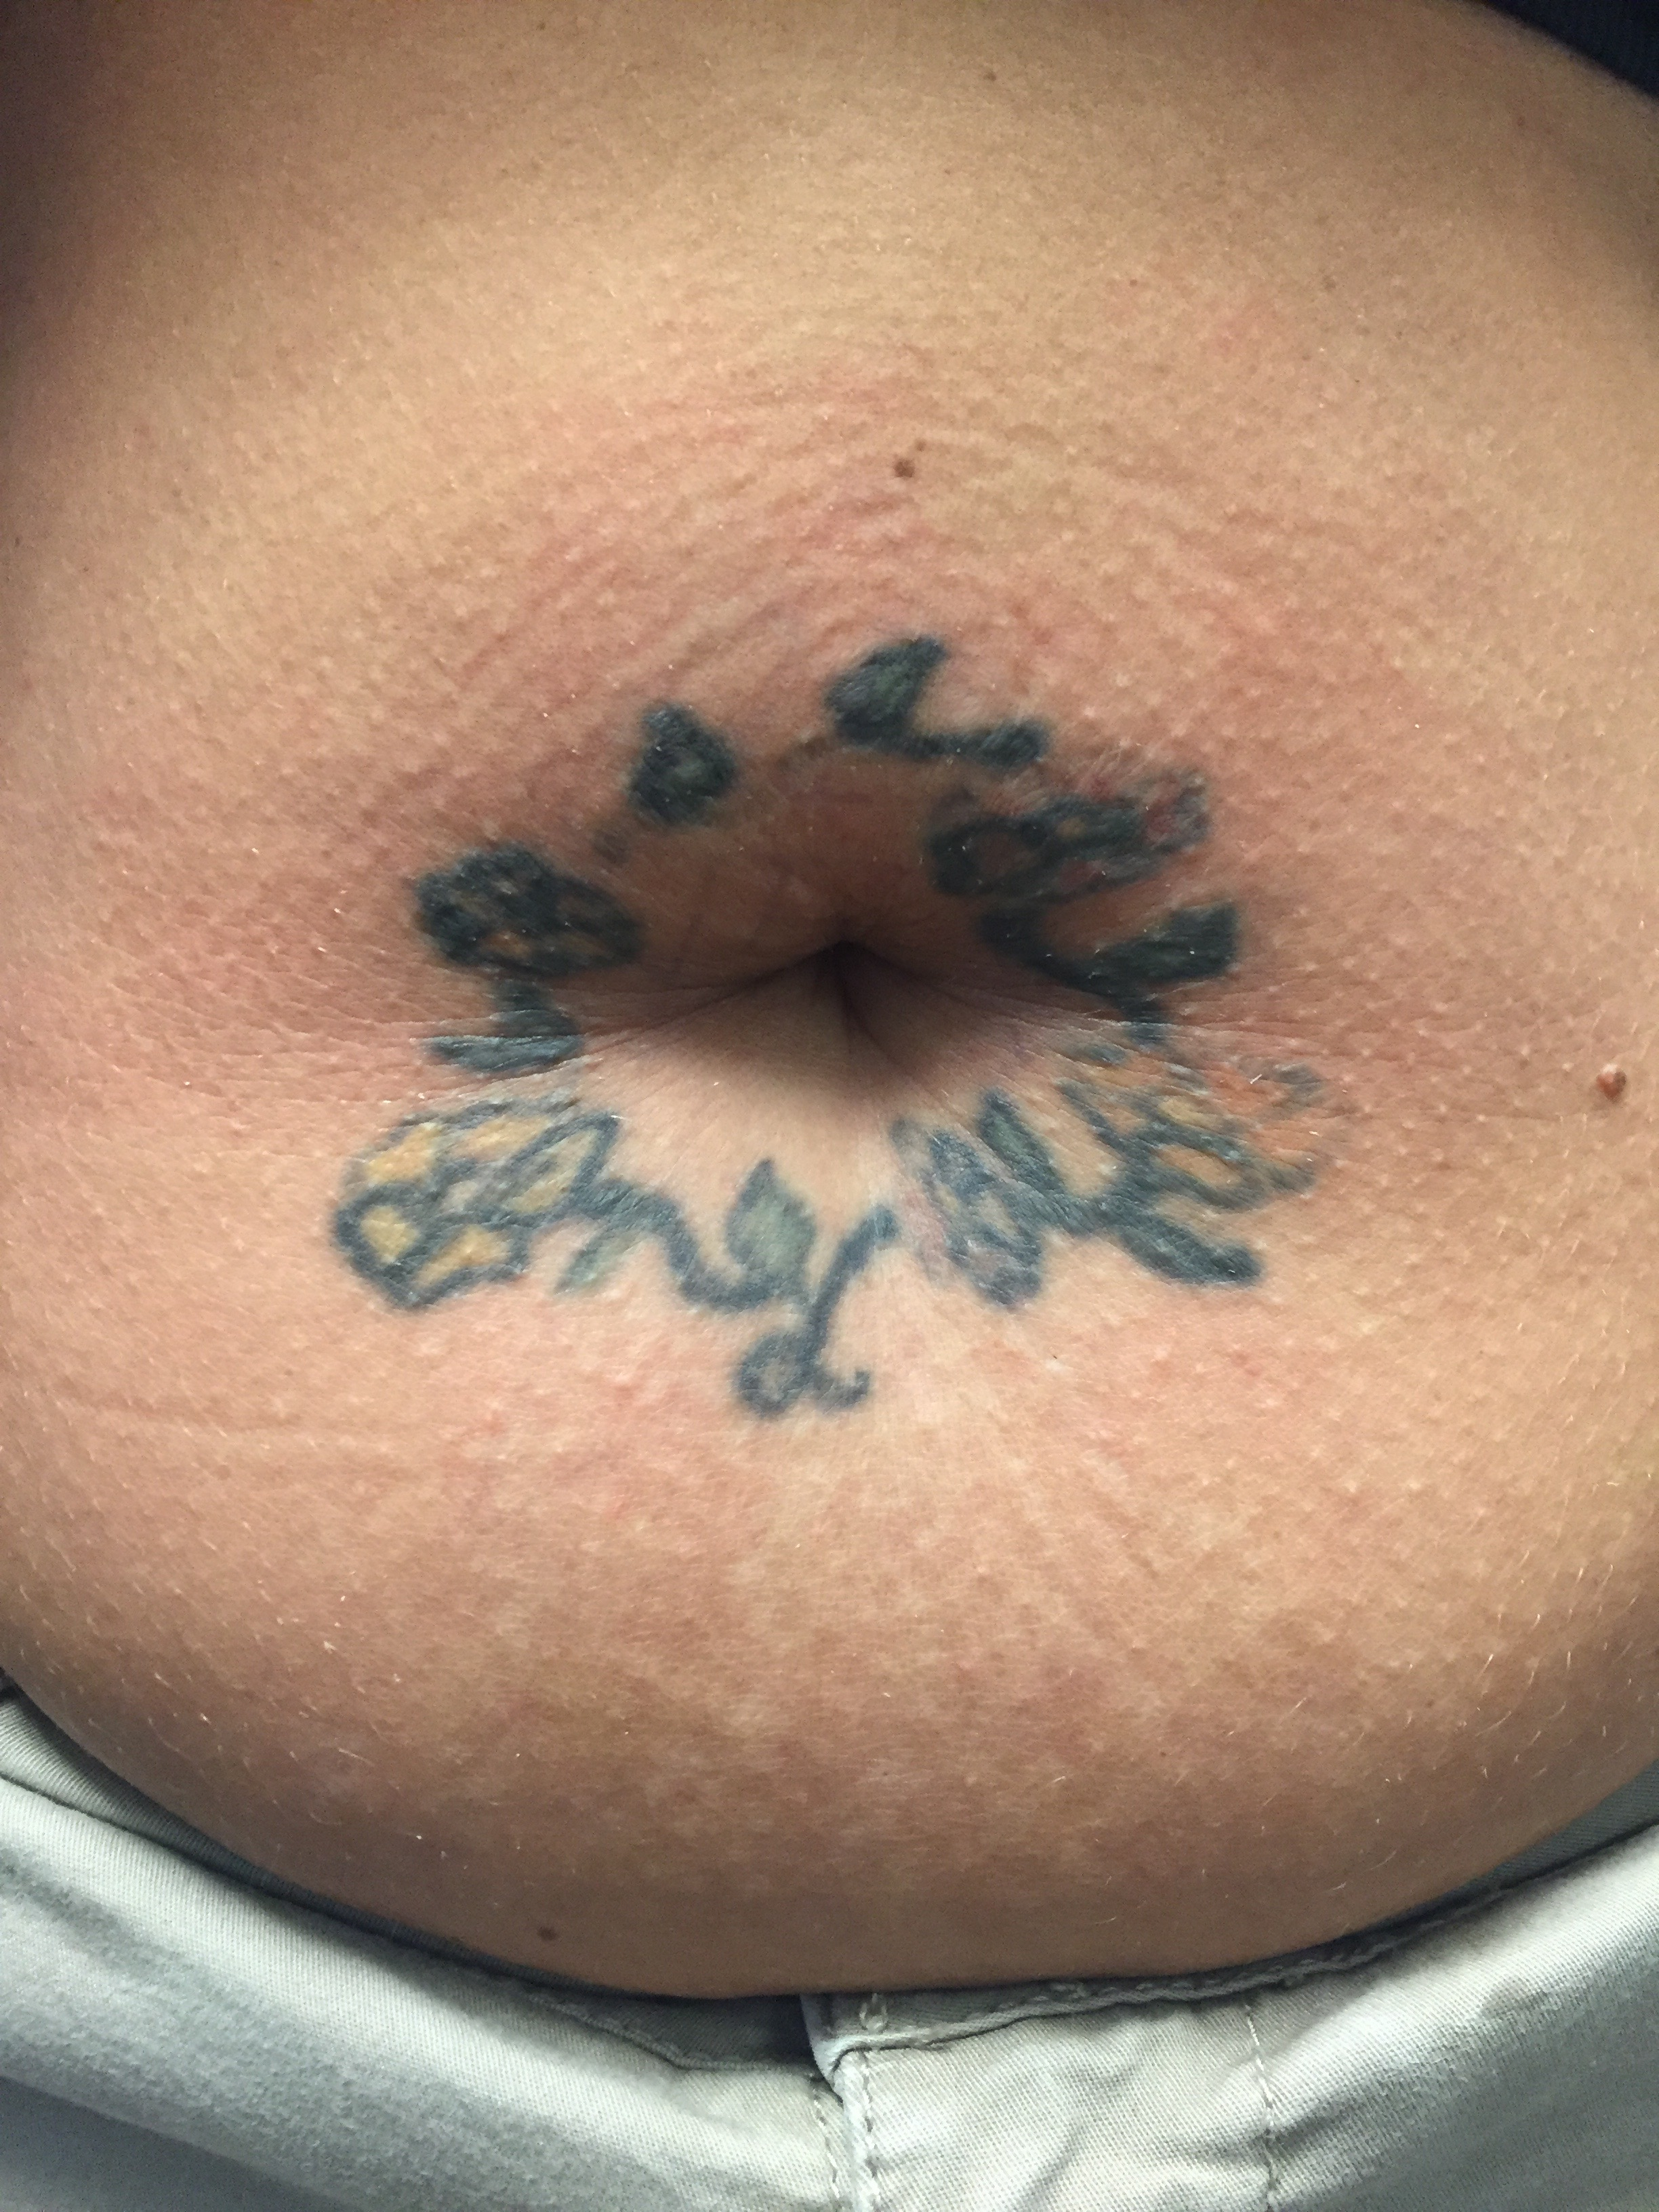 belly button before repair